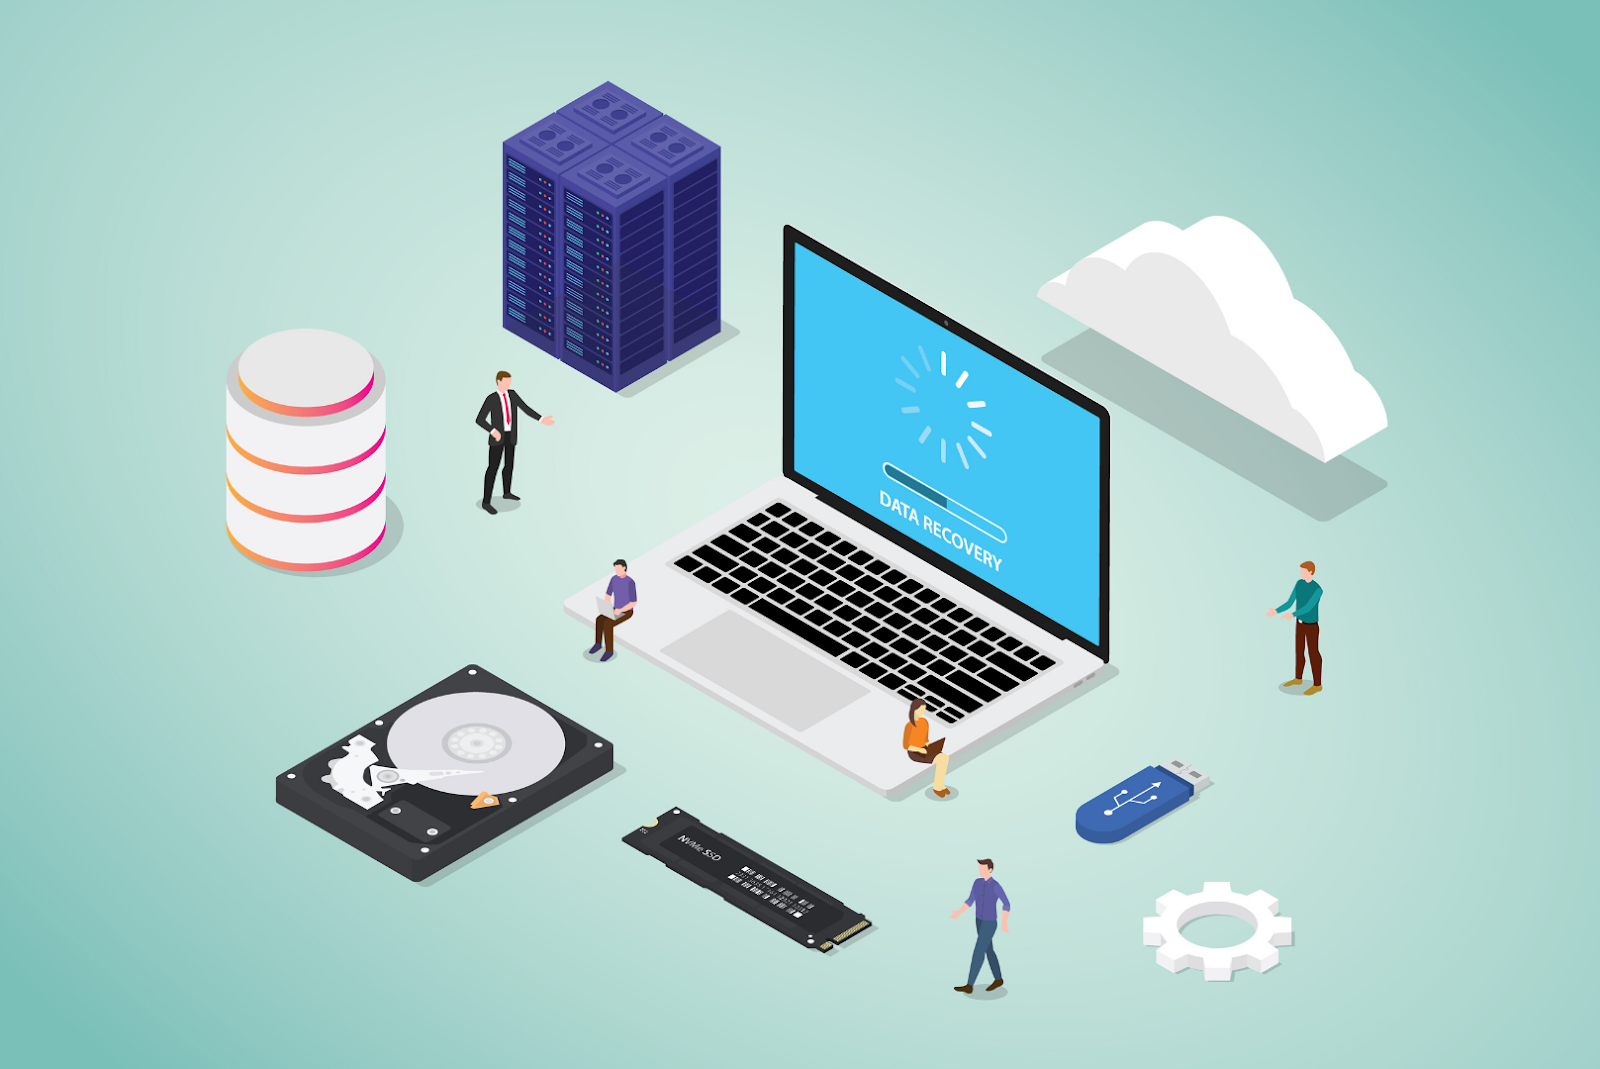 IT Services Provider - Data backup and recovery